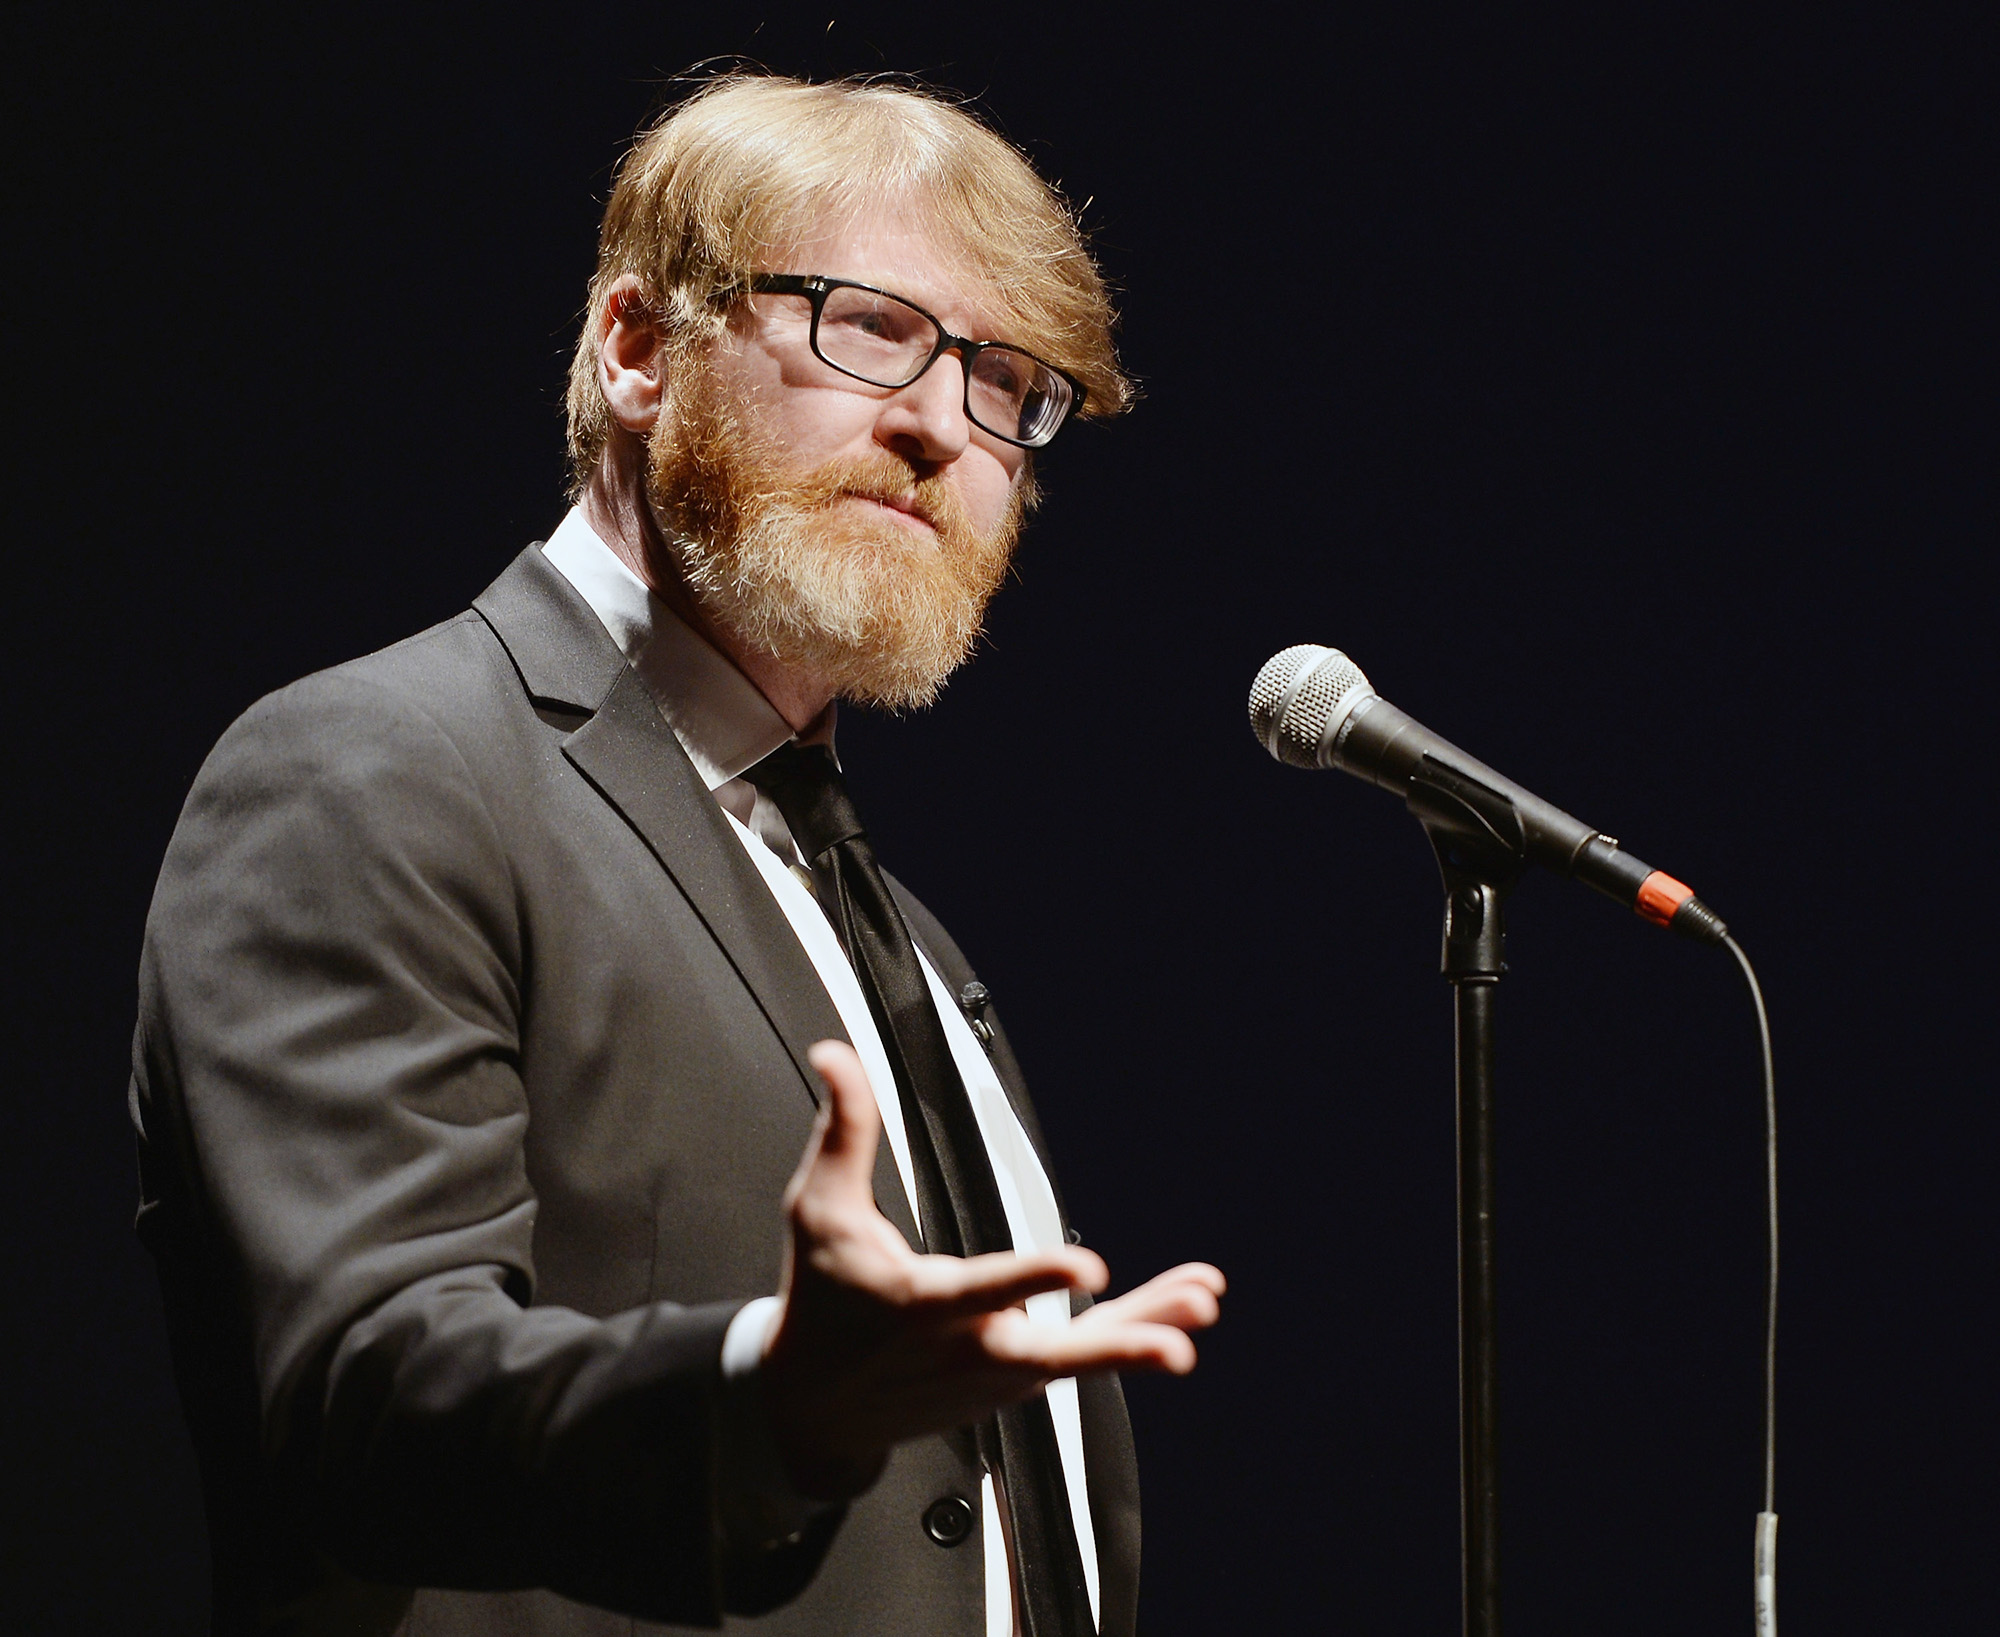 chuck klosterman esquire essays Chuck klosterman iv has 15,837 ratings and 818 reviews madeline said: i first learned about chuck klosterman through my friend, who is a nonfiction writ.